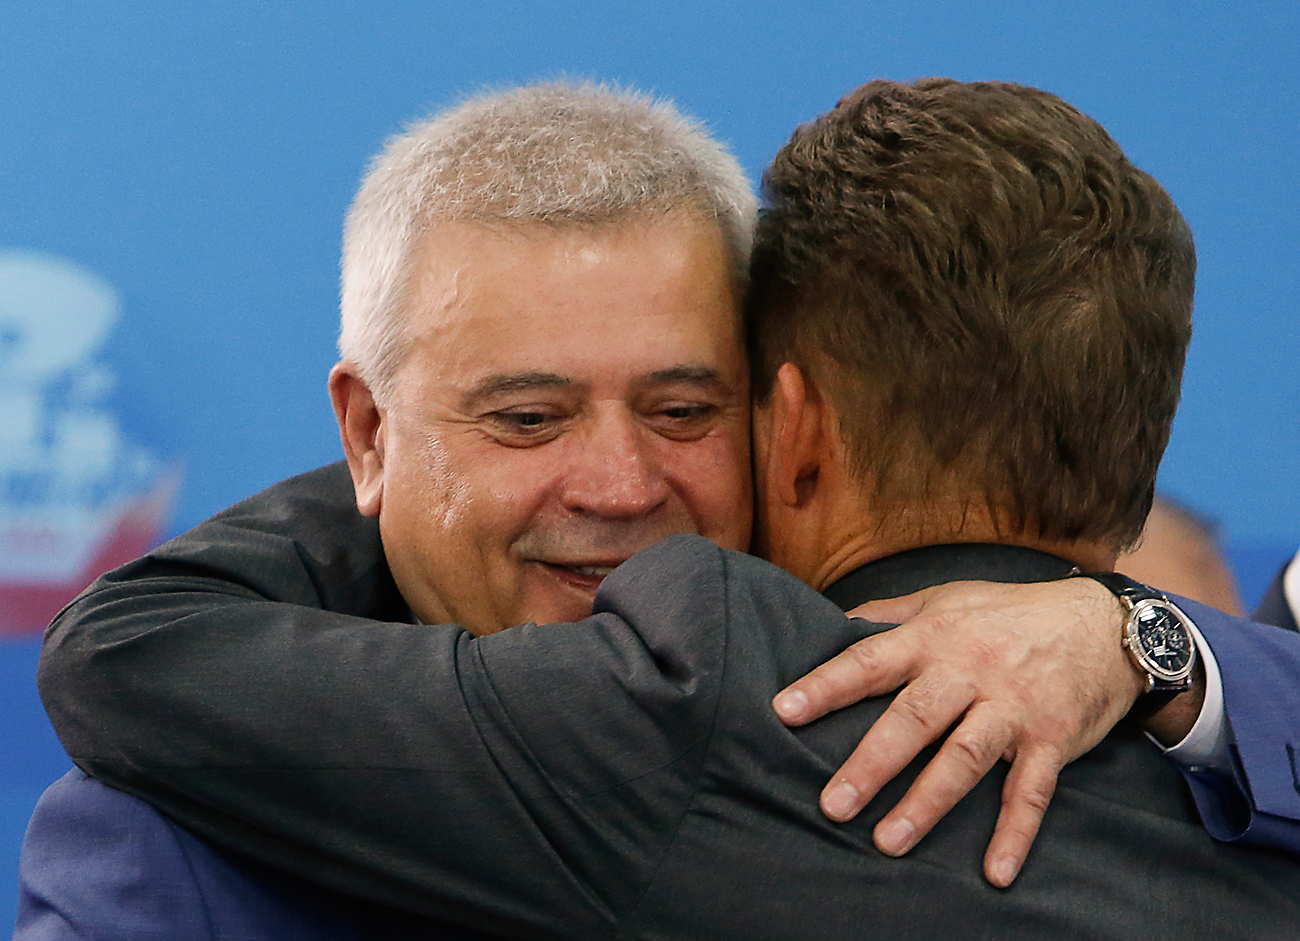 Gazprom Chief Executive Alexei Miller (right) embraces Lukoil Chief Executive Officer Vagit Alekperov during the St. Petersburg International Economic Forum 2014.